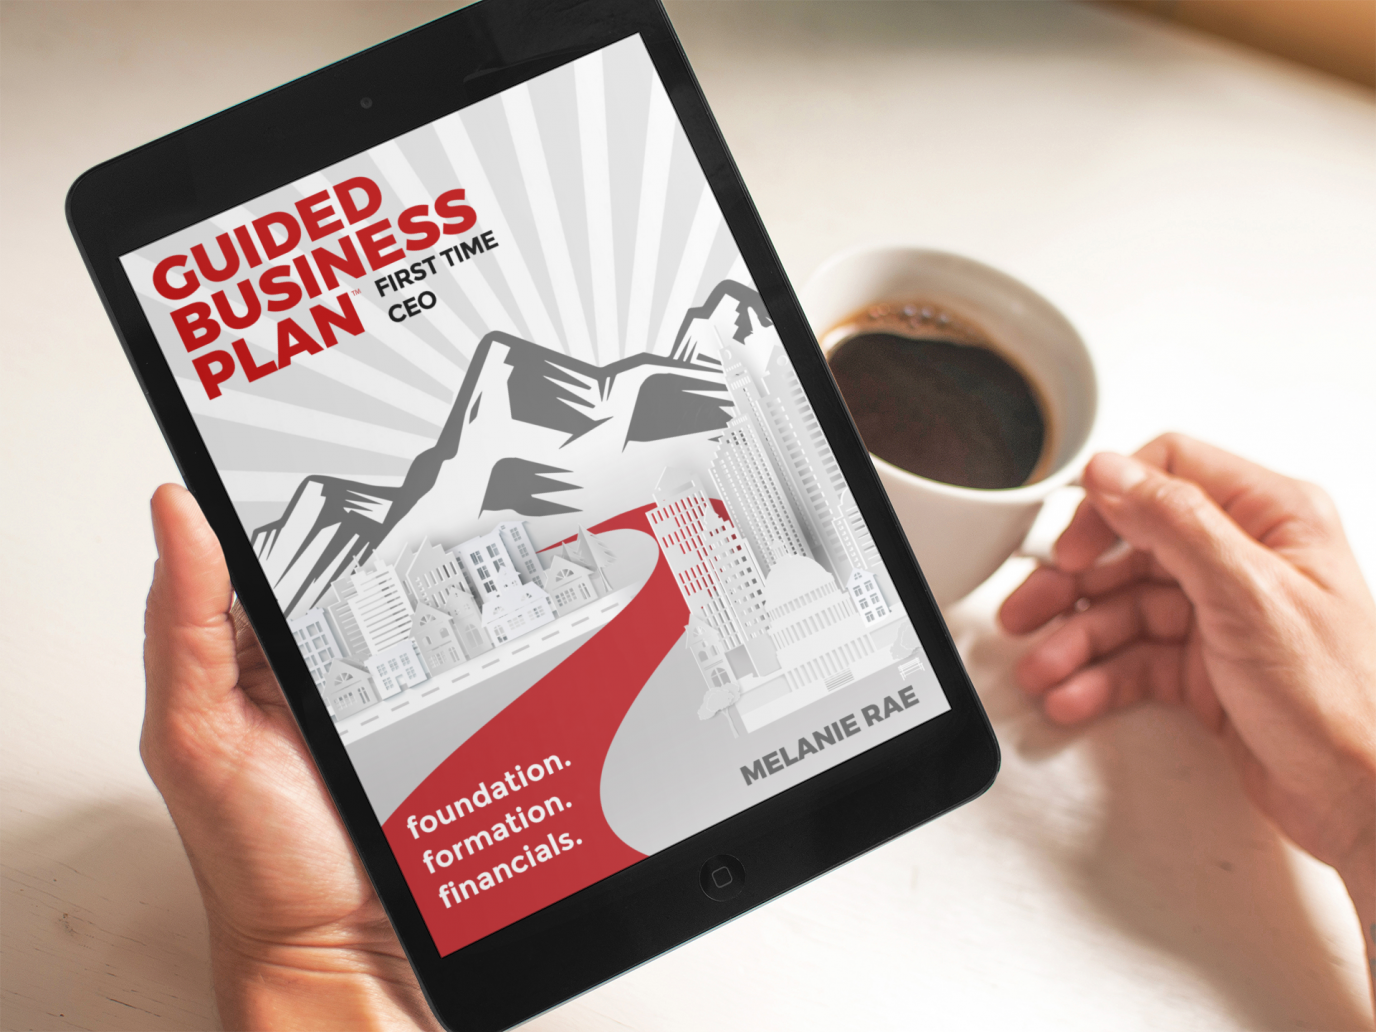 GUIDED Business Plan - First Time CEO - Online E-Workbook